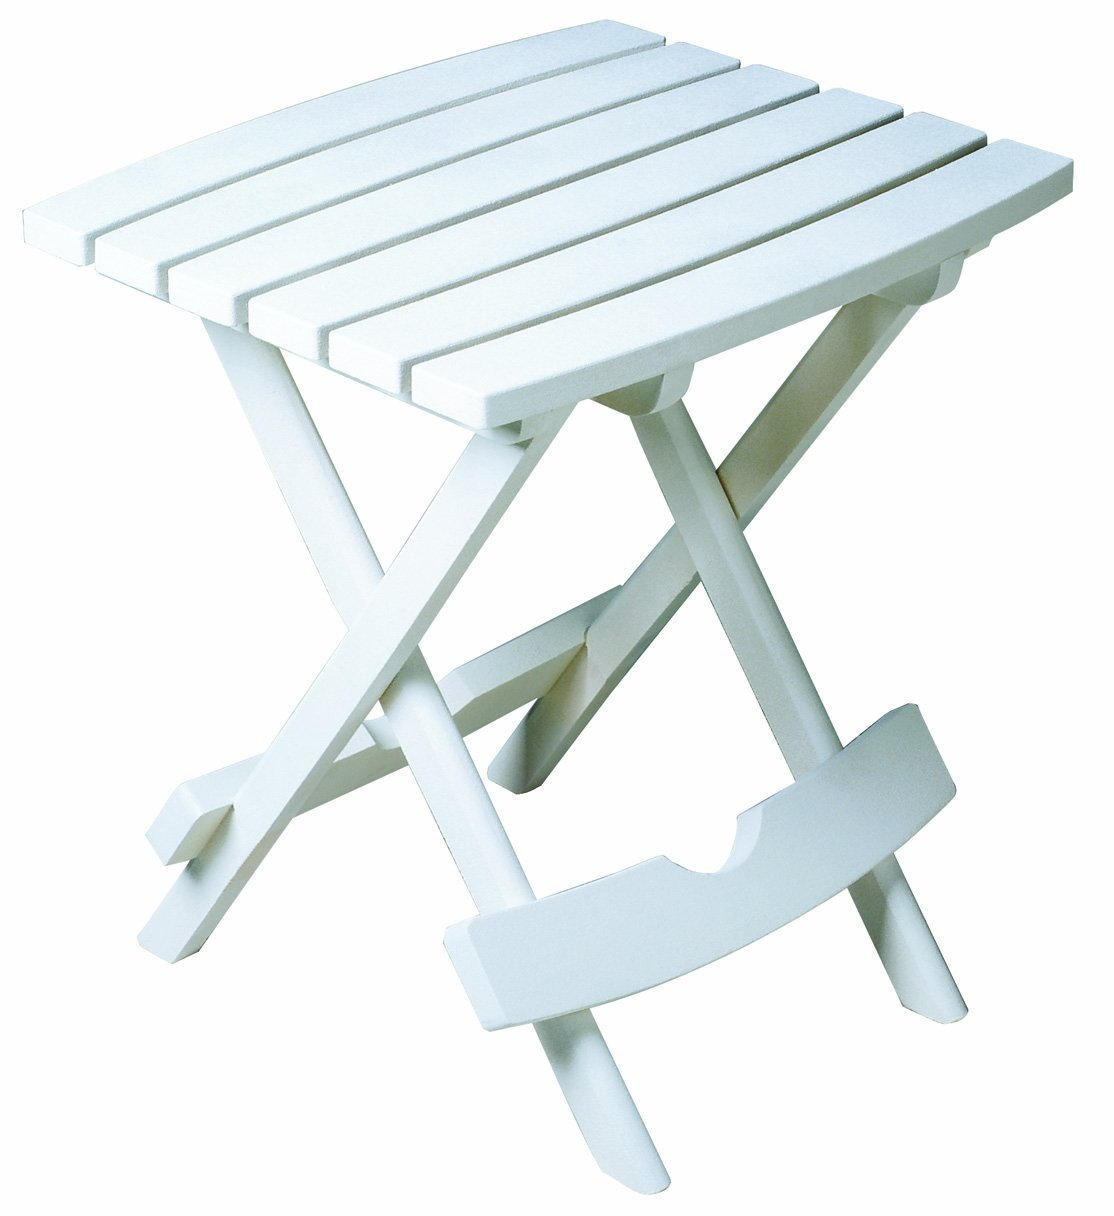 8500 48 3700 Plastic Quik Fold Side Table White Ideal Size Toplement Patio Chairs Adirondacks Or Chaise Lounges By Adams Manufacturing